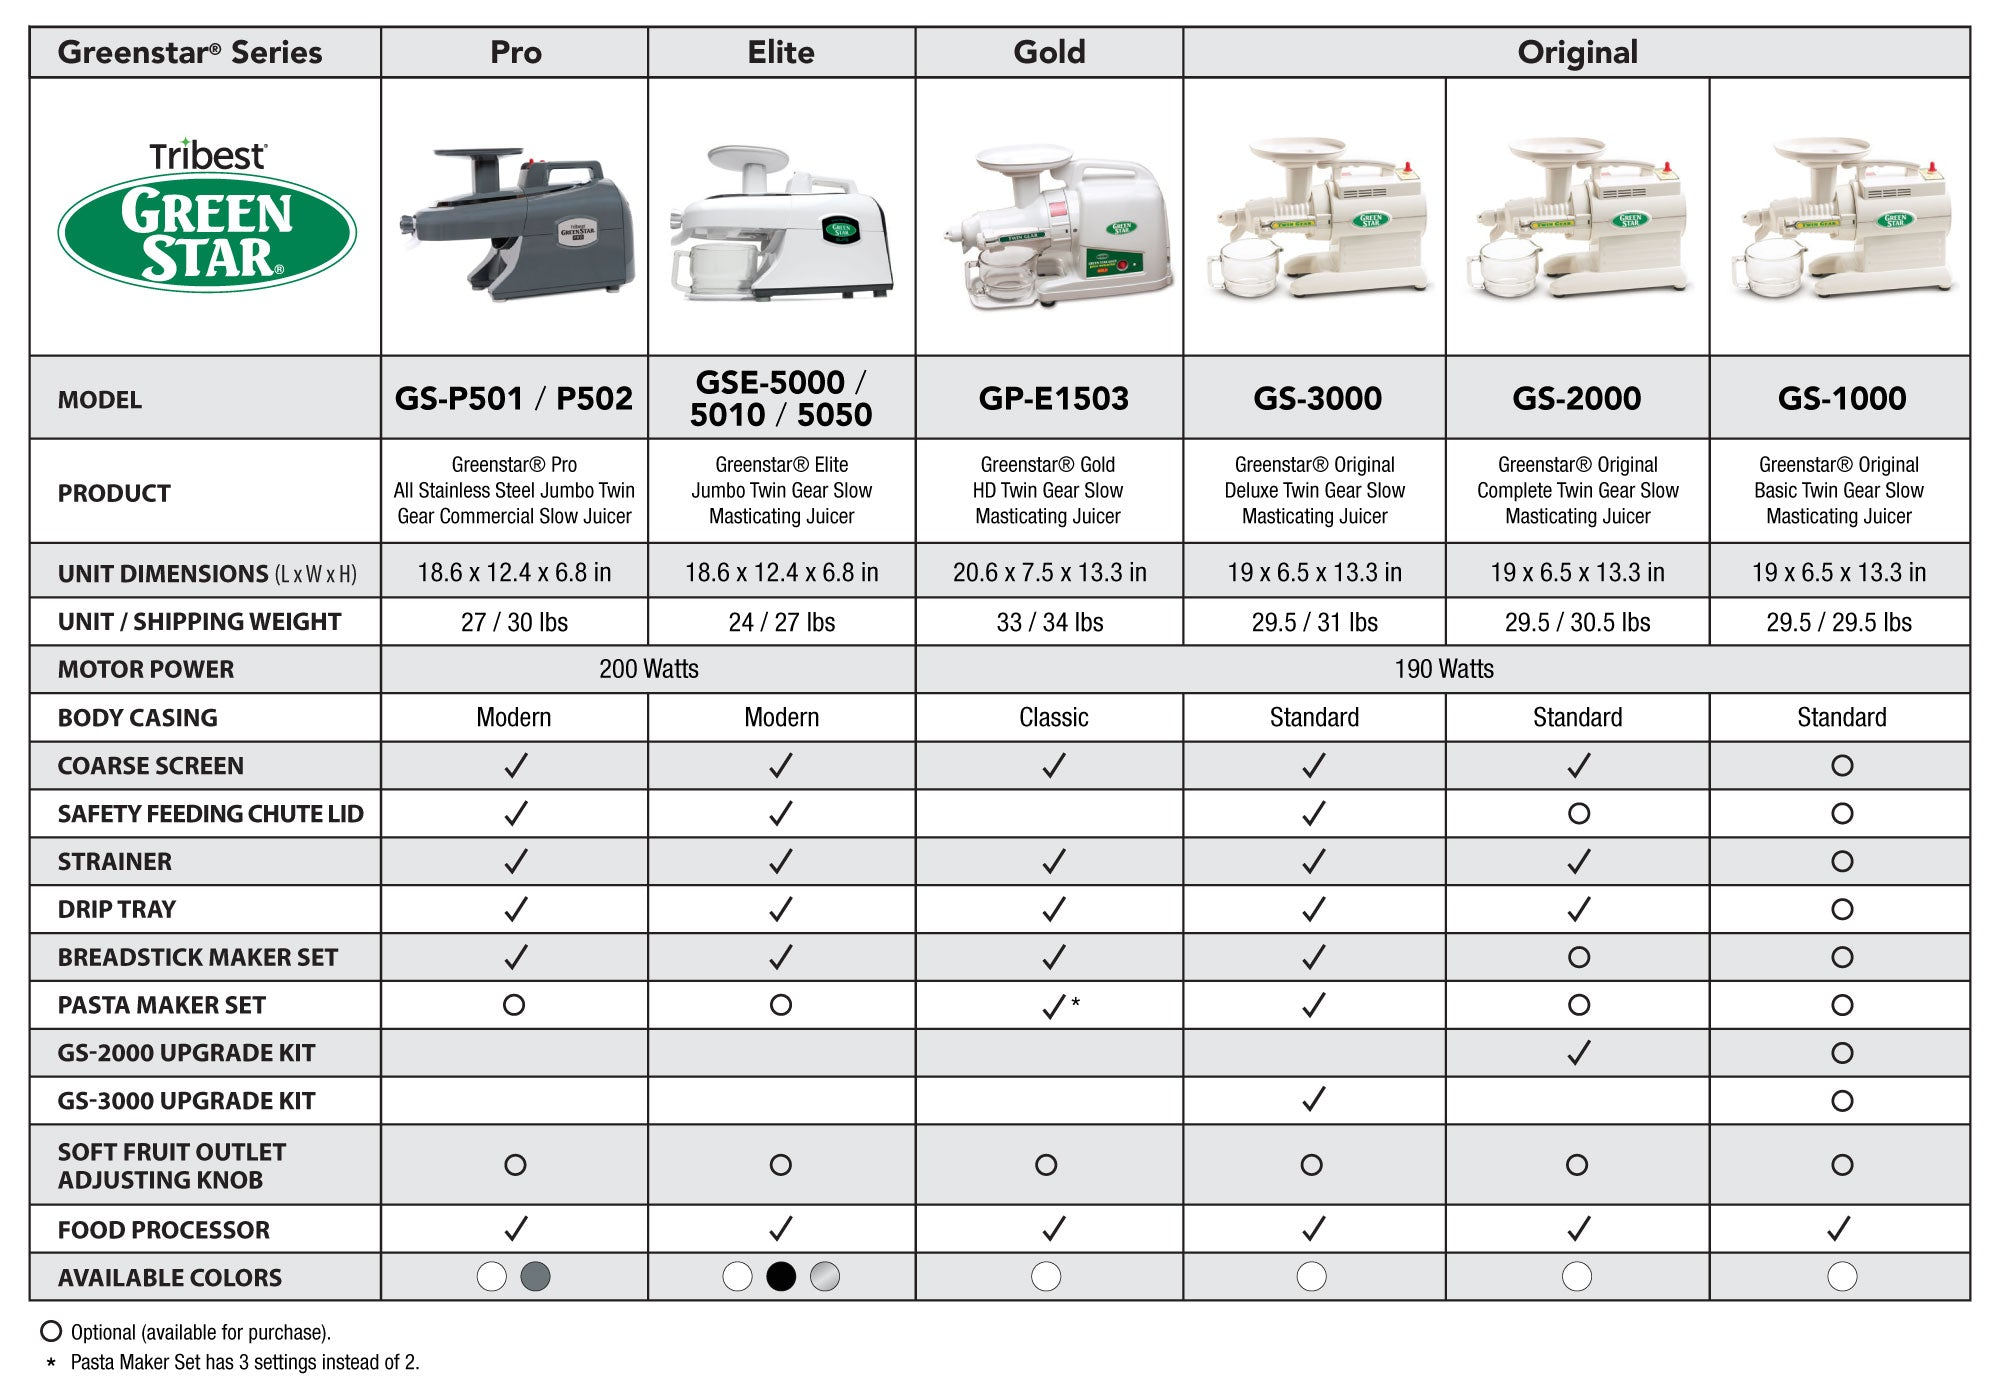 Model comparison chart for all Greenstar models